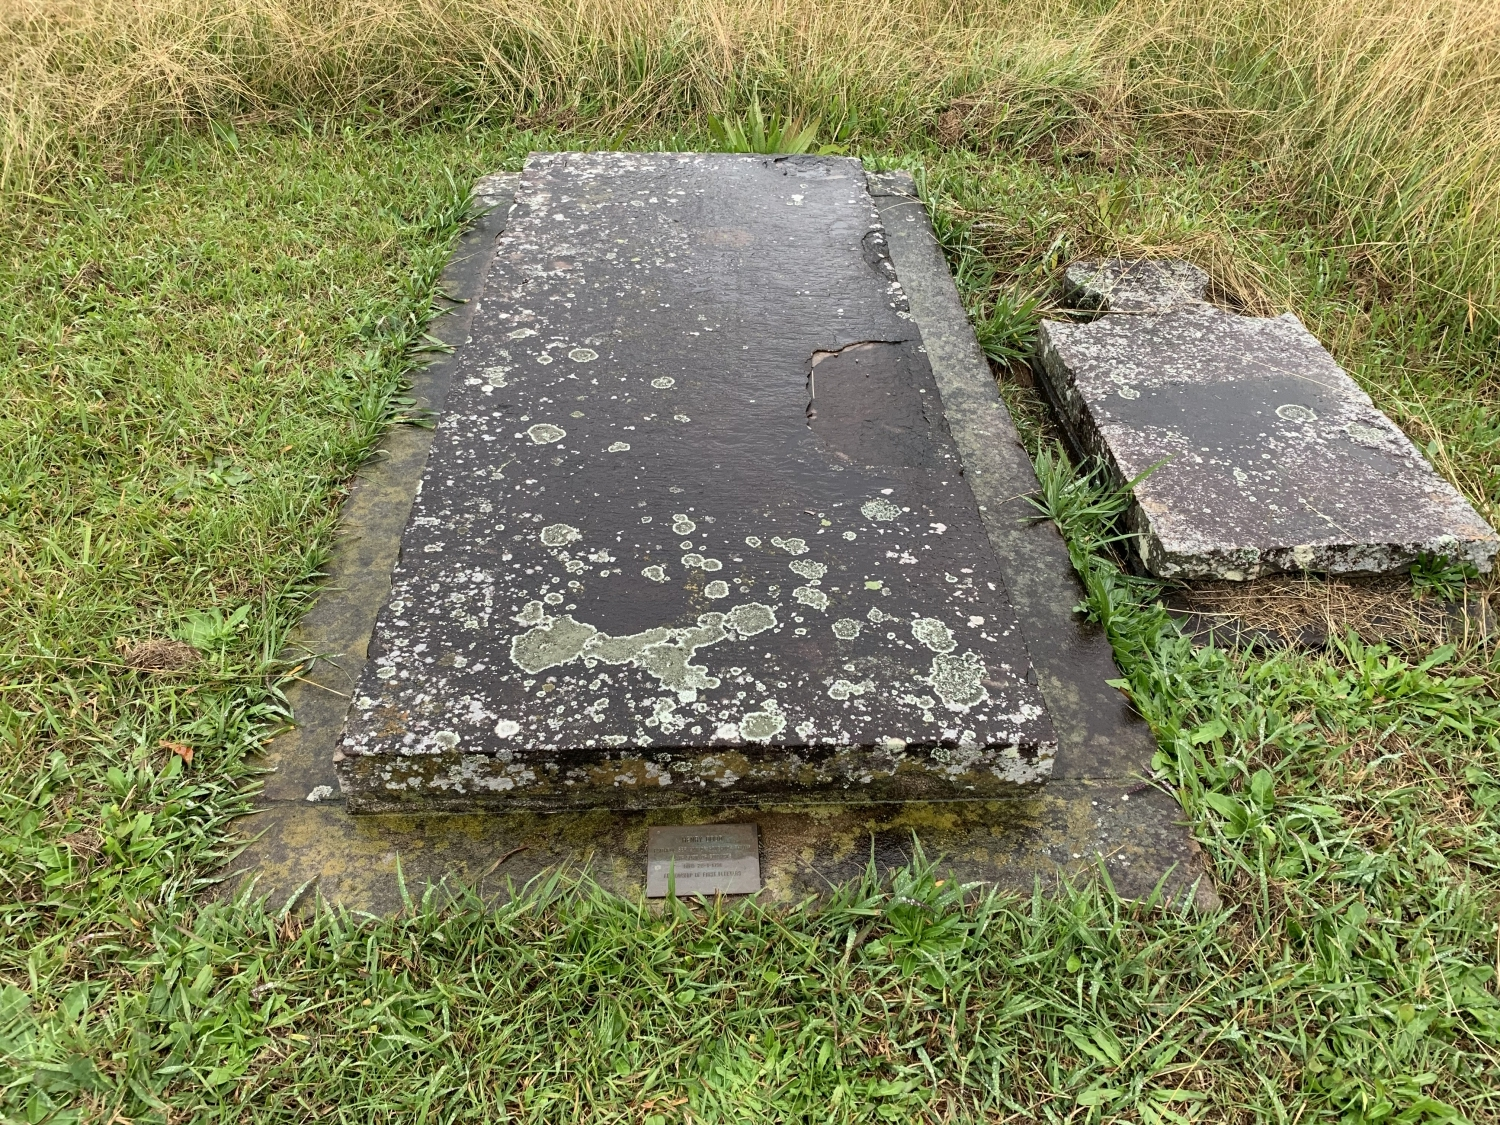 The site of Henry Dodd's grave has a curved sandstone top which has blackened in the elements and got lichen growing on it